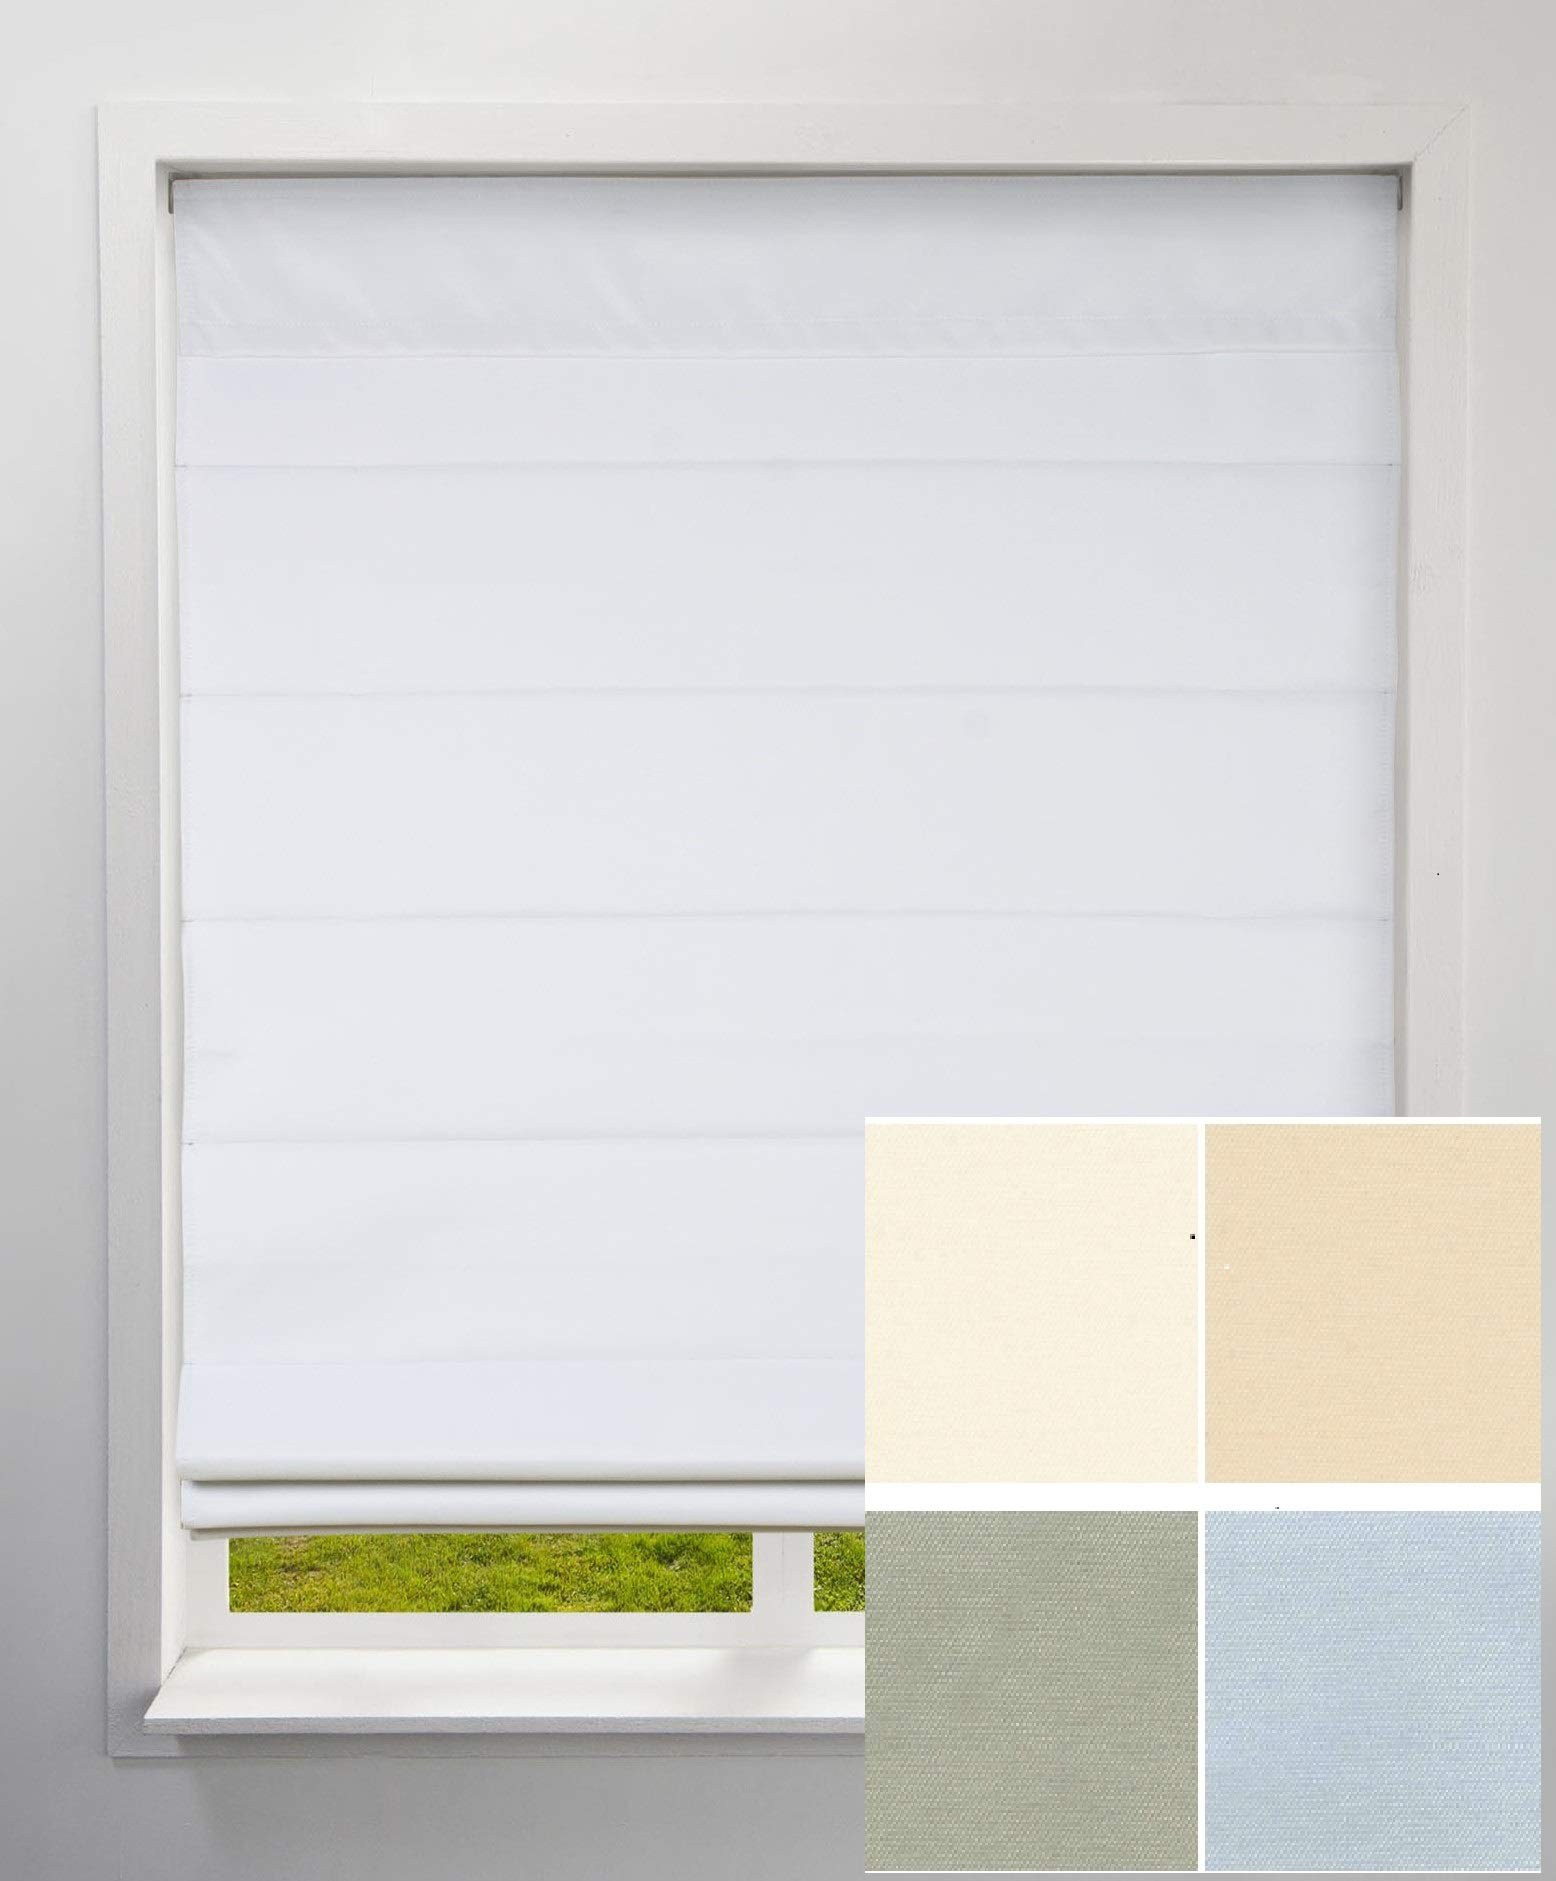 Arlo Blinds Blackout Fabric Roman Shades - Sample Swatch Pack, not a Working Shades, for You to Review The Color and Fabric Before Ordering.Include White, Ivory, Grey Color.